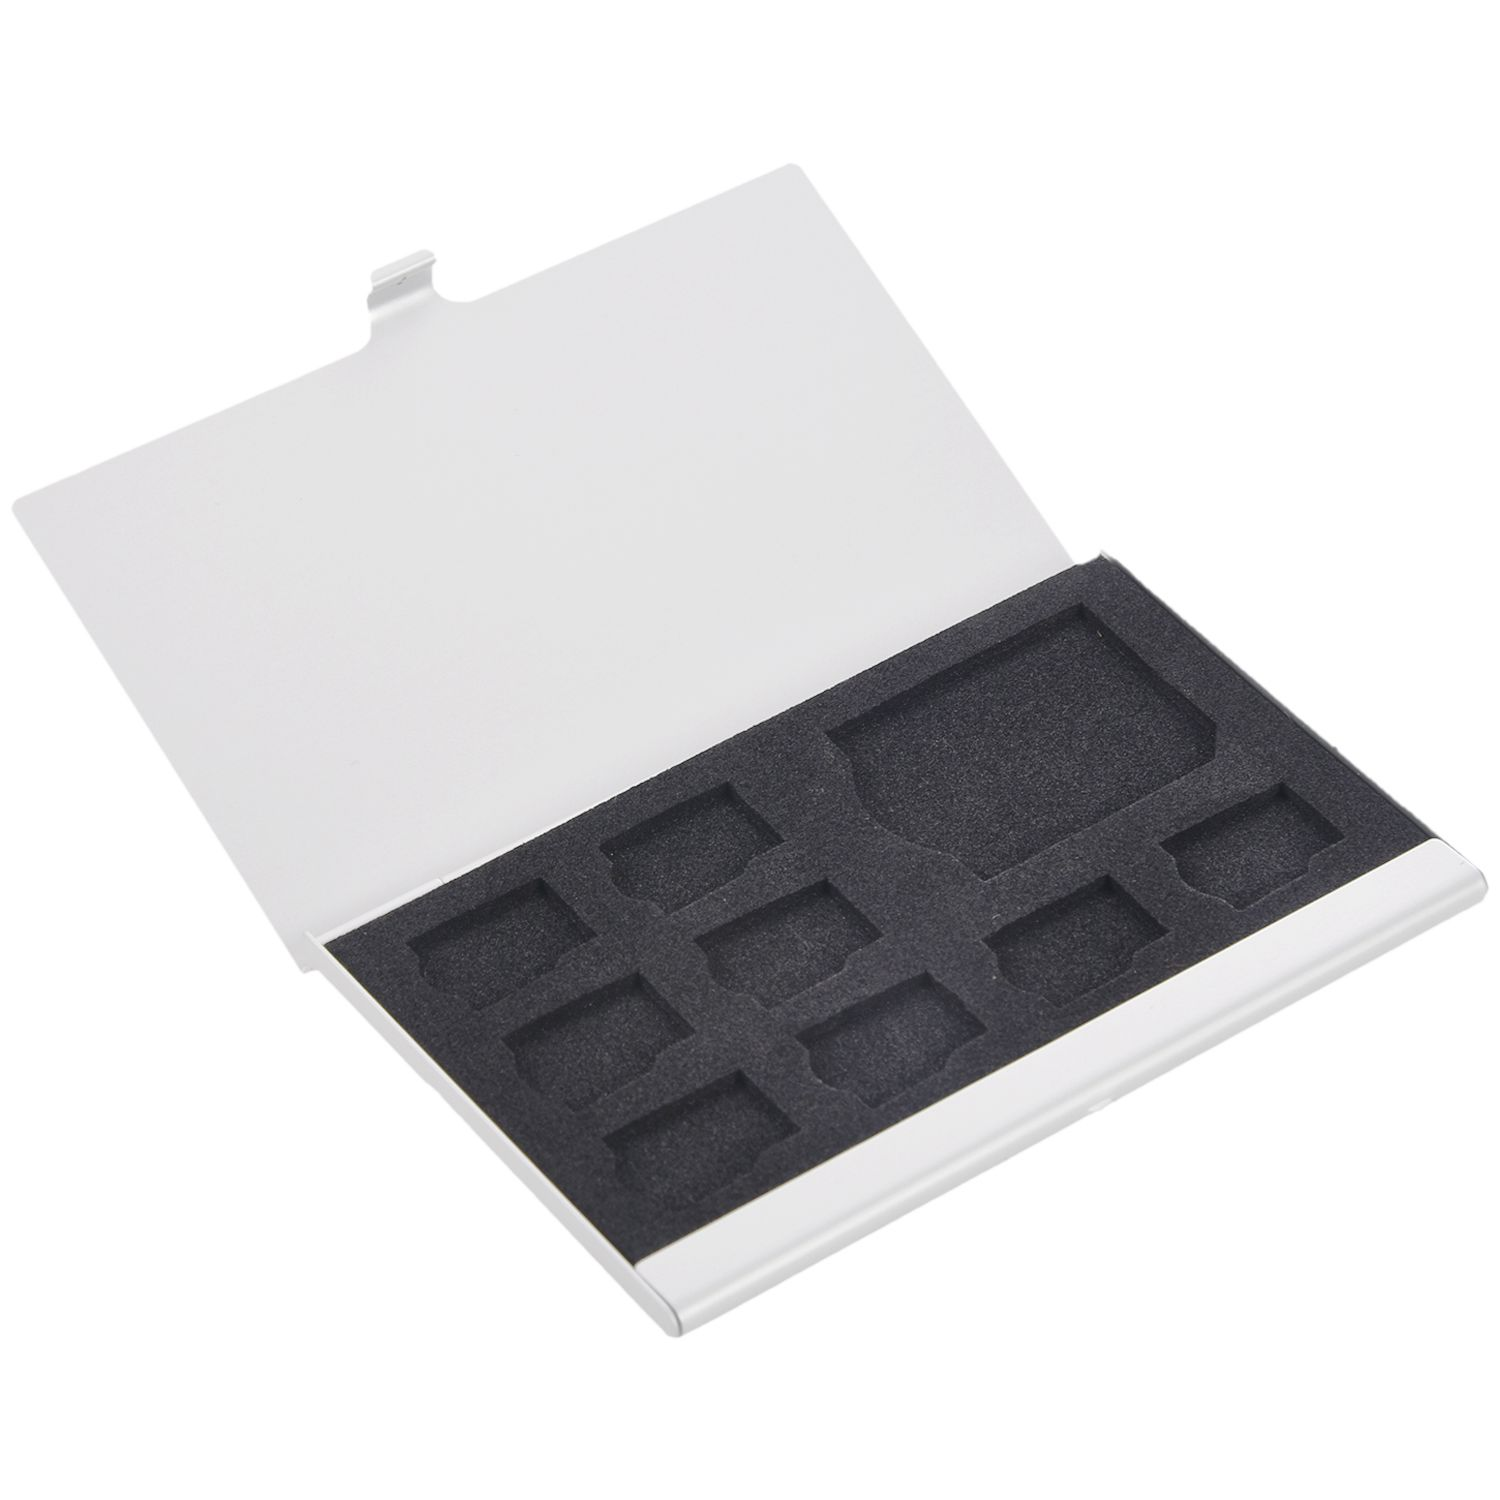 9 Micro-SD/SD Memory Card Storage Holder Box Protector Metal Cases 8 TF&1 SD